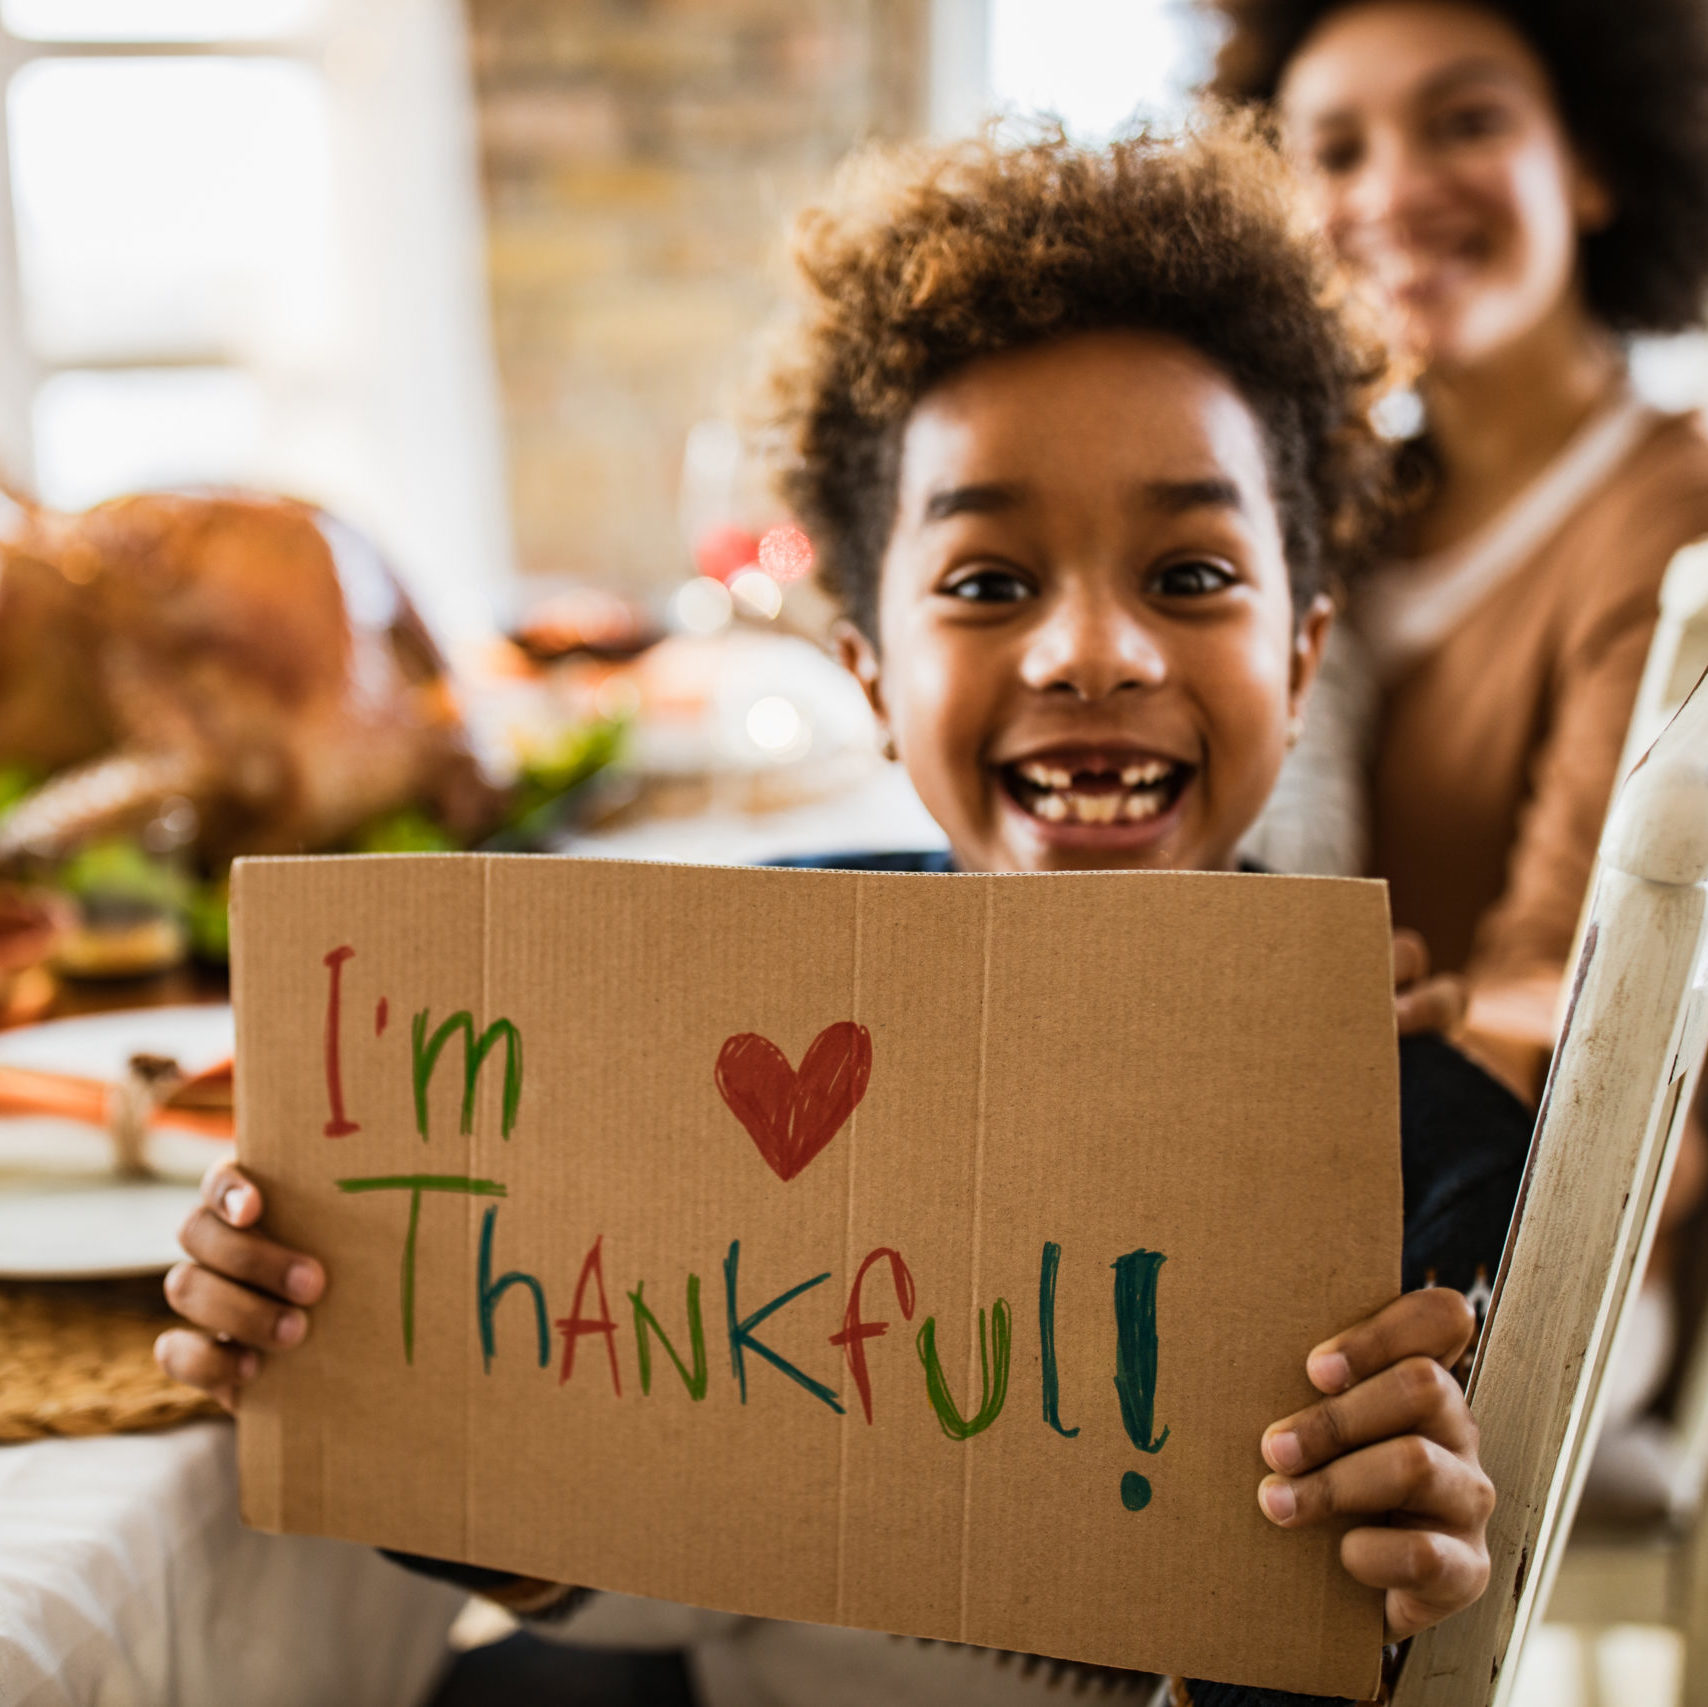 Happy African American girl holding 'I'm thankful' sign and looking at camera during Thanksgiving meal with her parents.